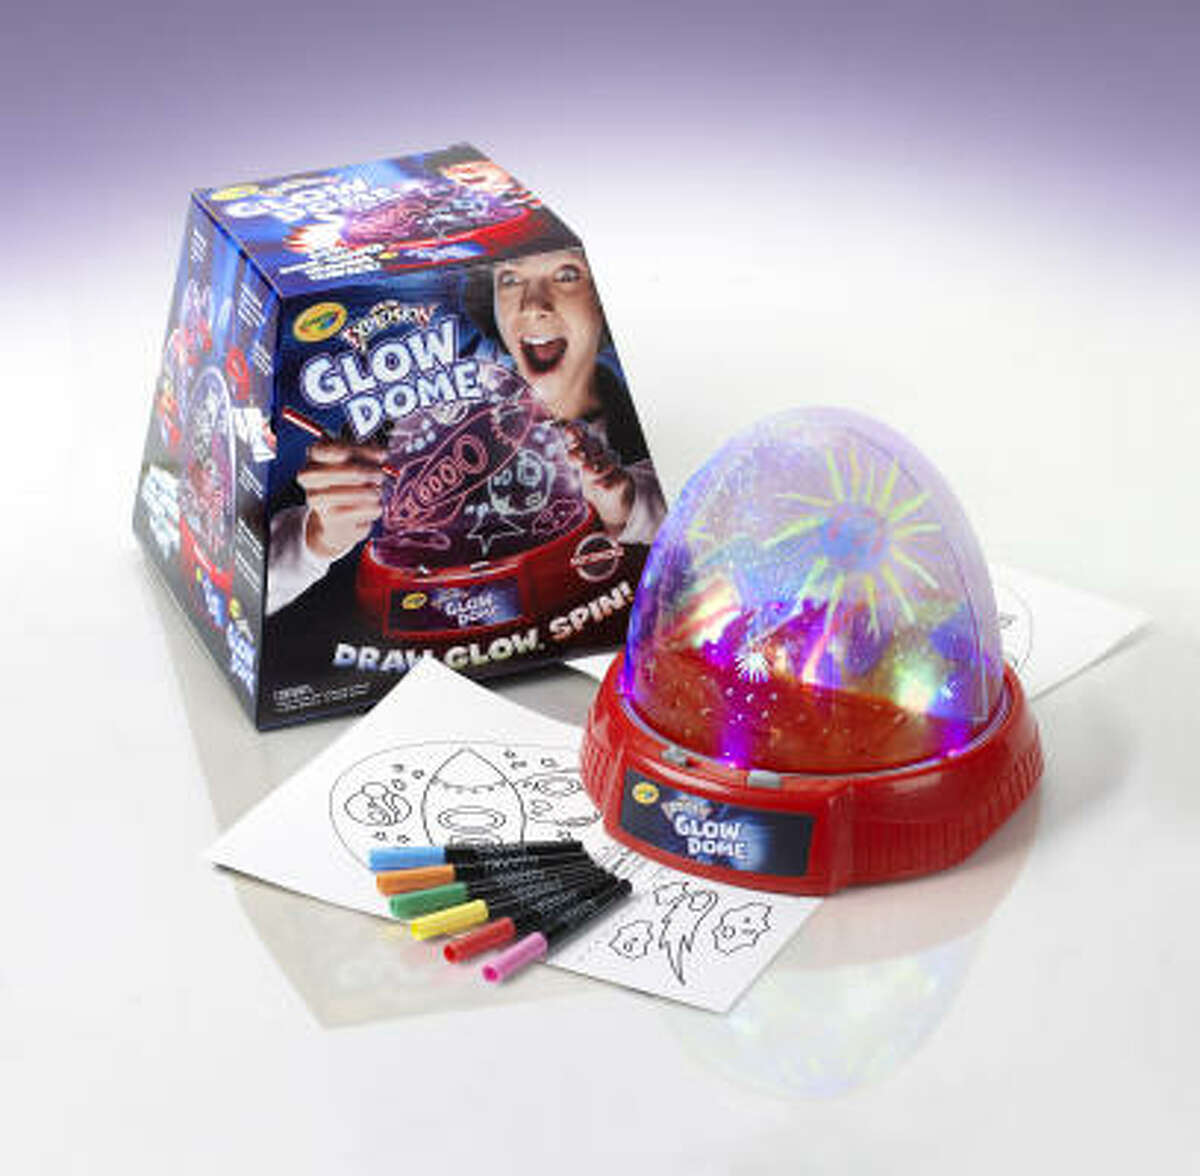 Doodle on Crayola Glow Dome ($30, ages 6 and up) with special glow markers. Then, turn out the lights and switch on the orb to see the drawings light up and spin around. Read more about Good Housekeeping's Best Toy Awards here.